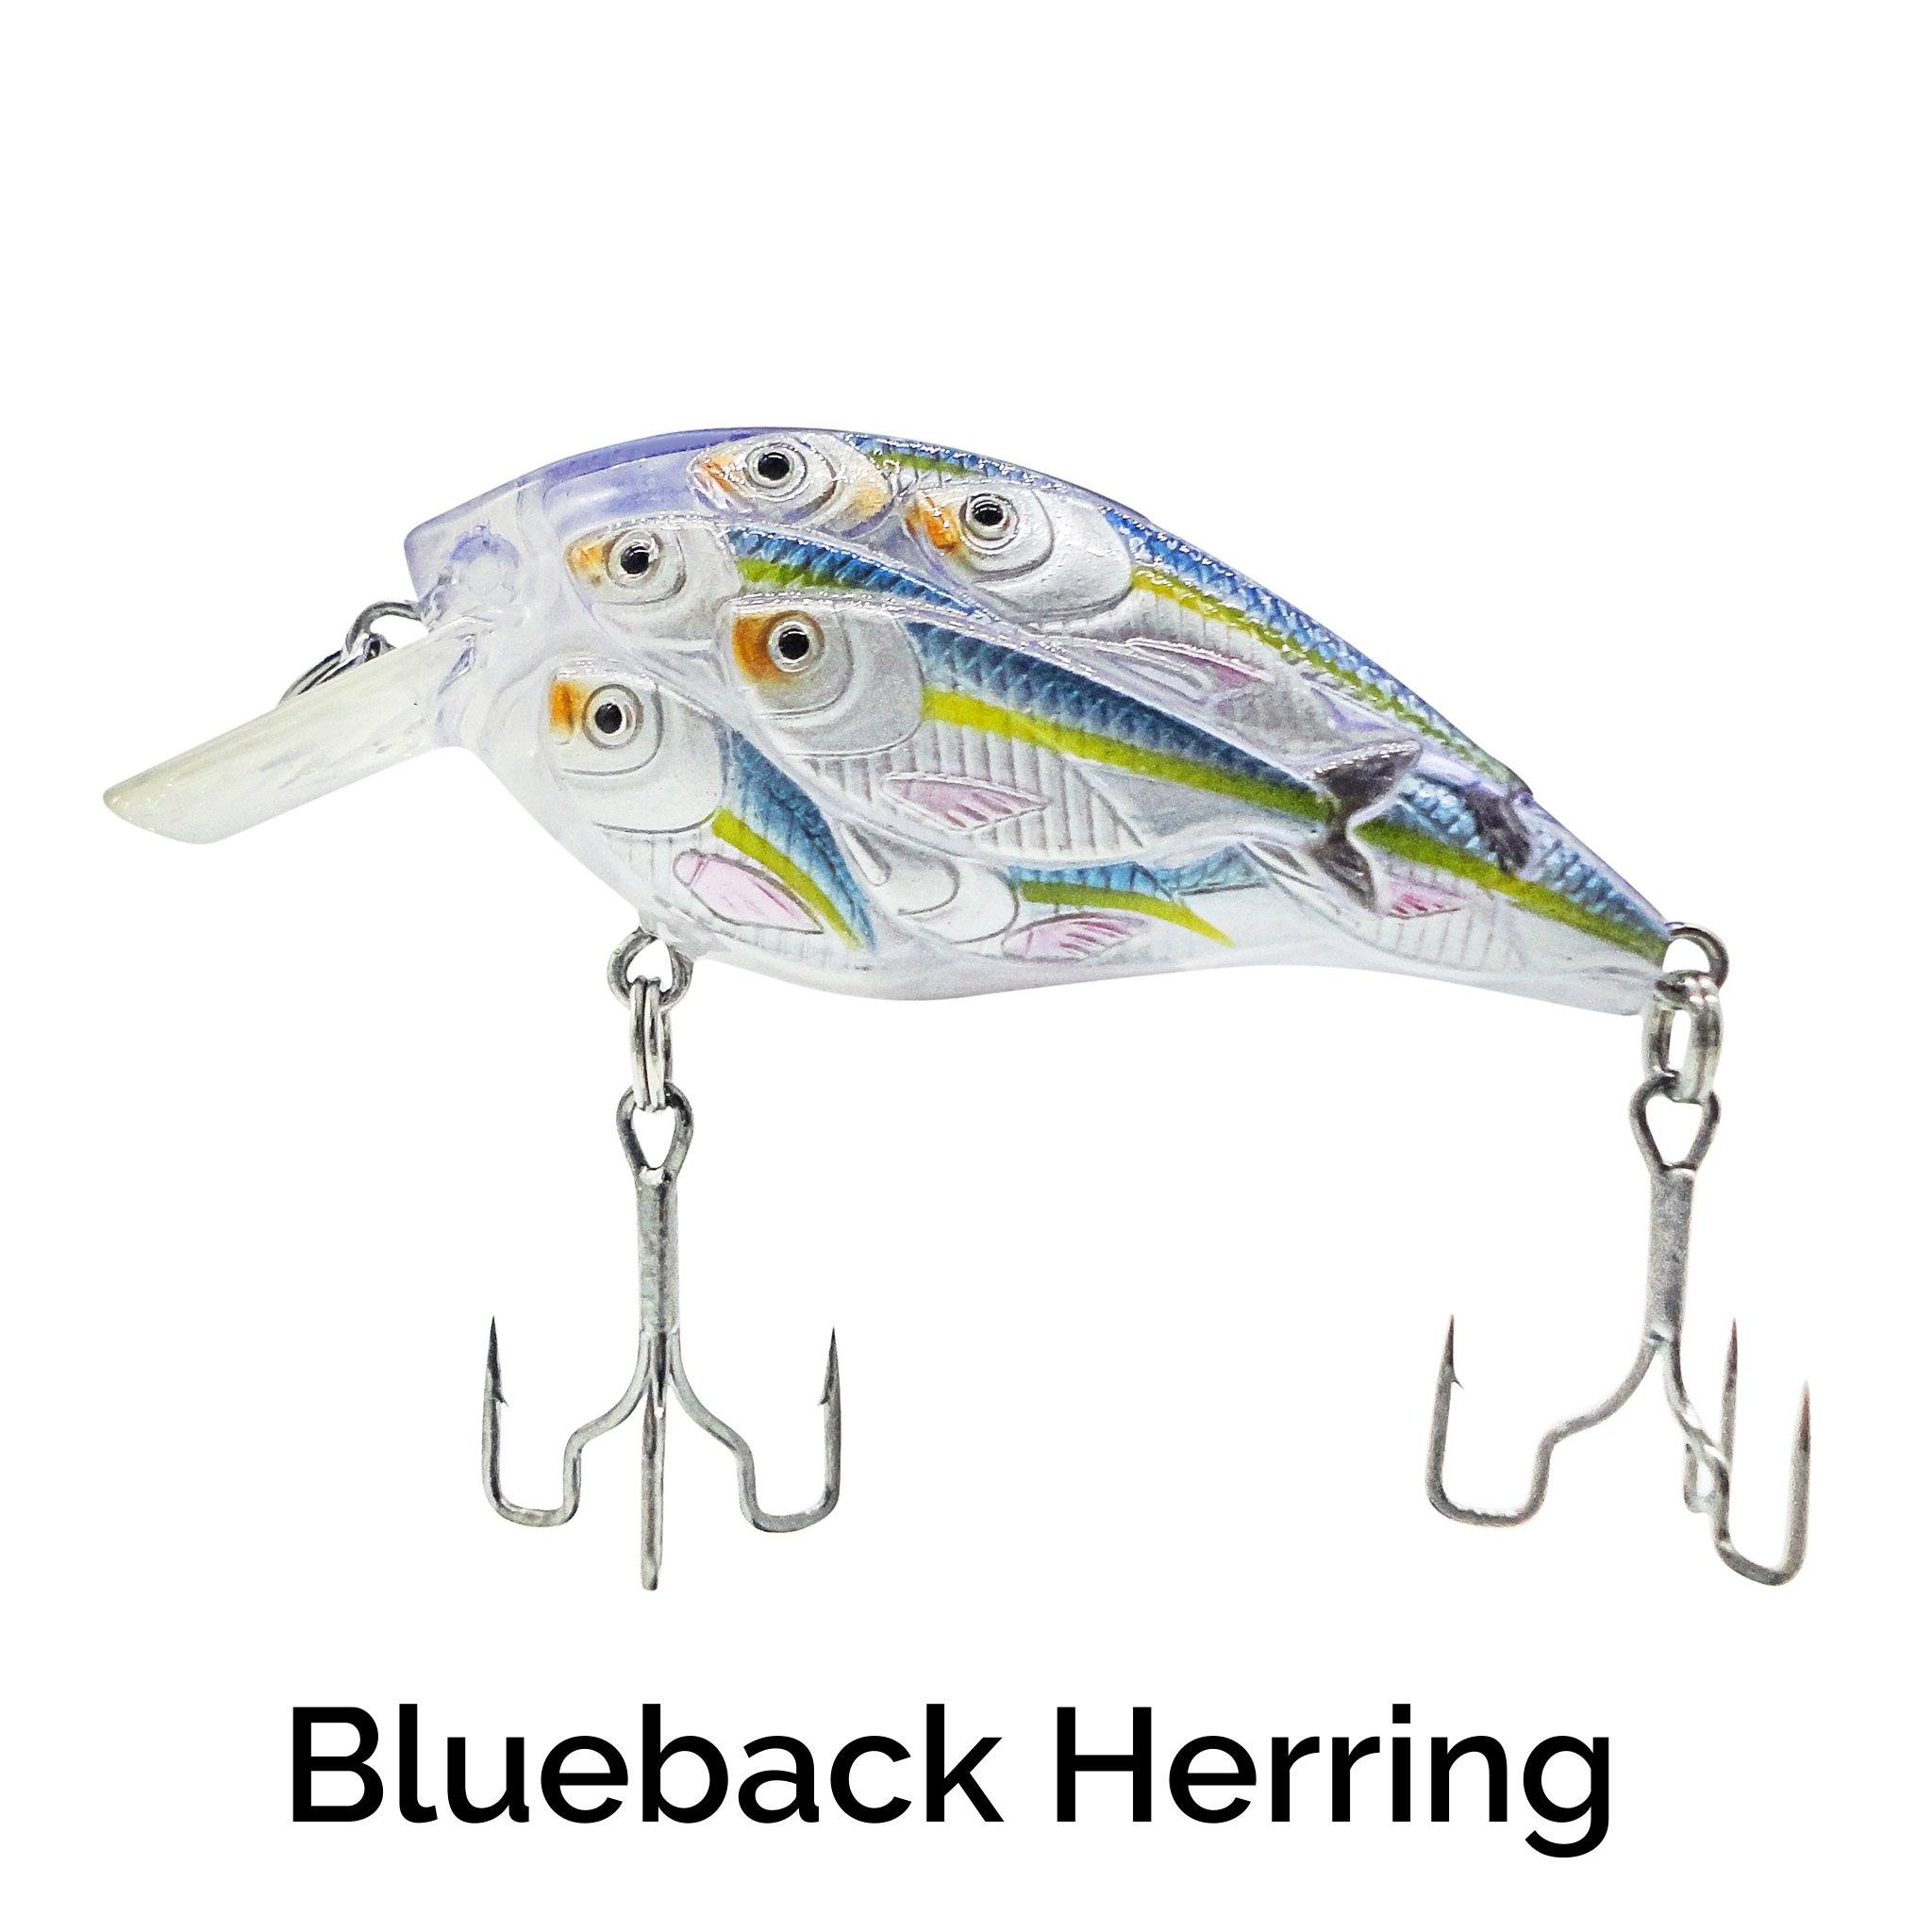 Trapper Schooling Squarebill Related Trapper Tackle LLC Blueback Herring